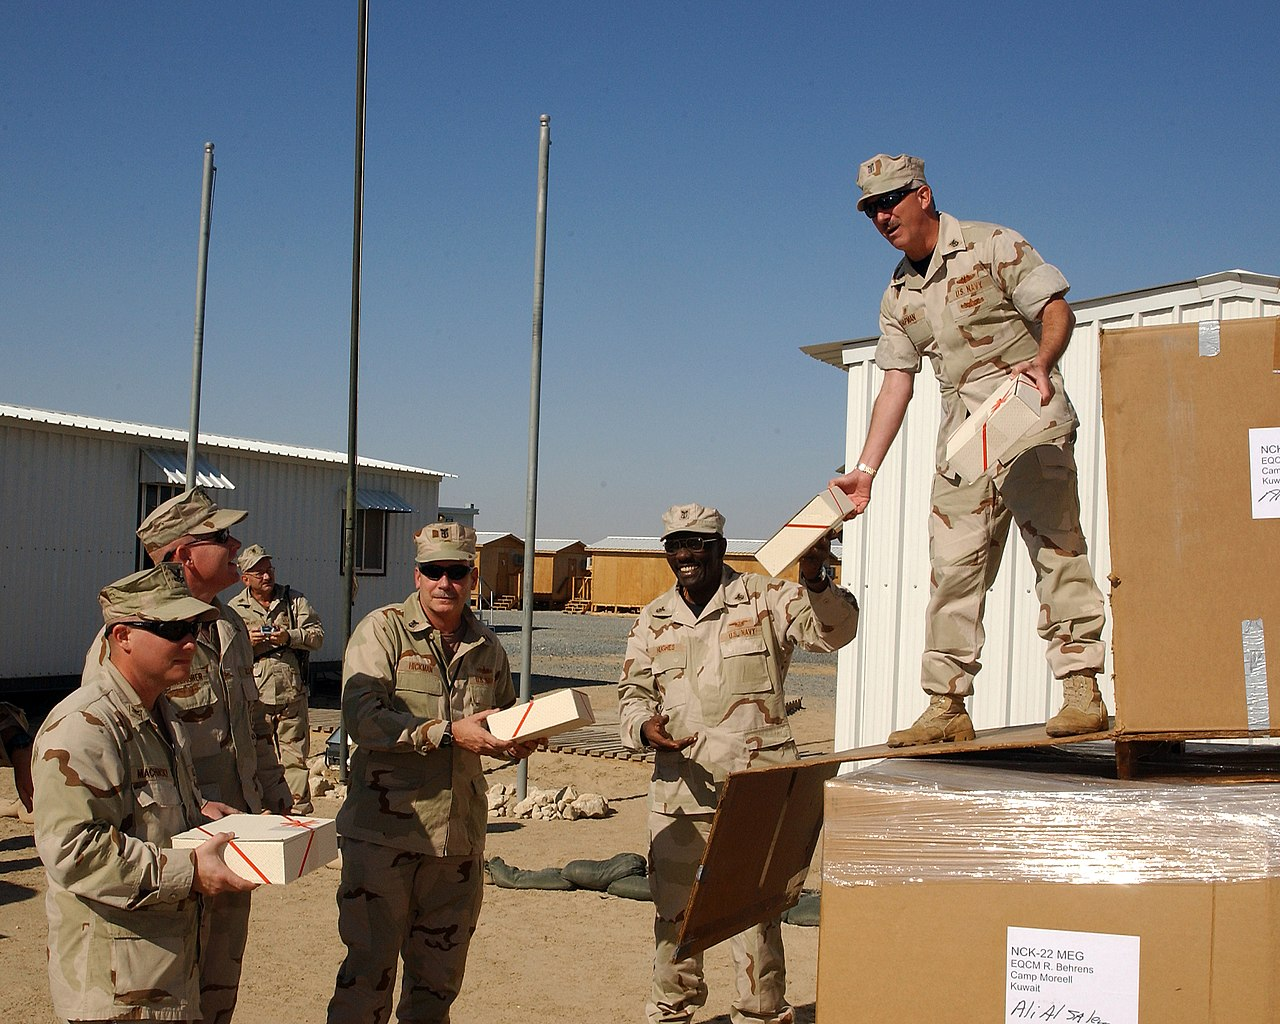 File:US Navy 041211-N-6812T-001 Master Chiefs hand out Christmas ...